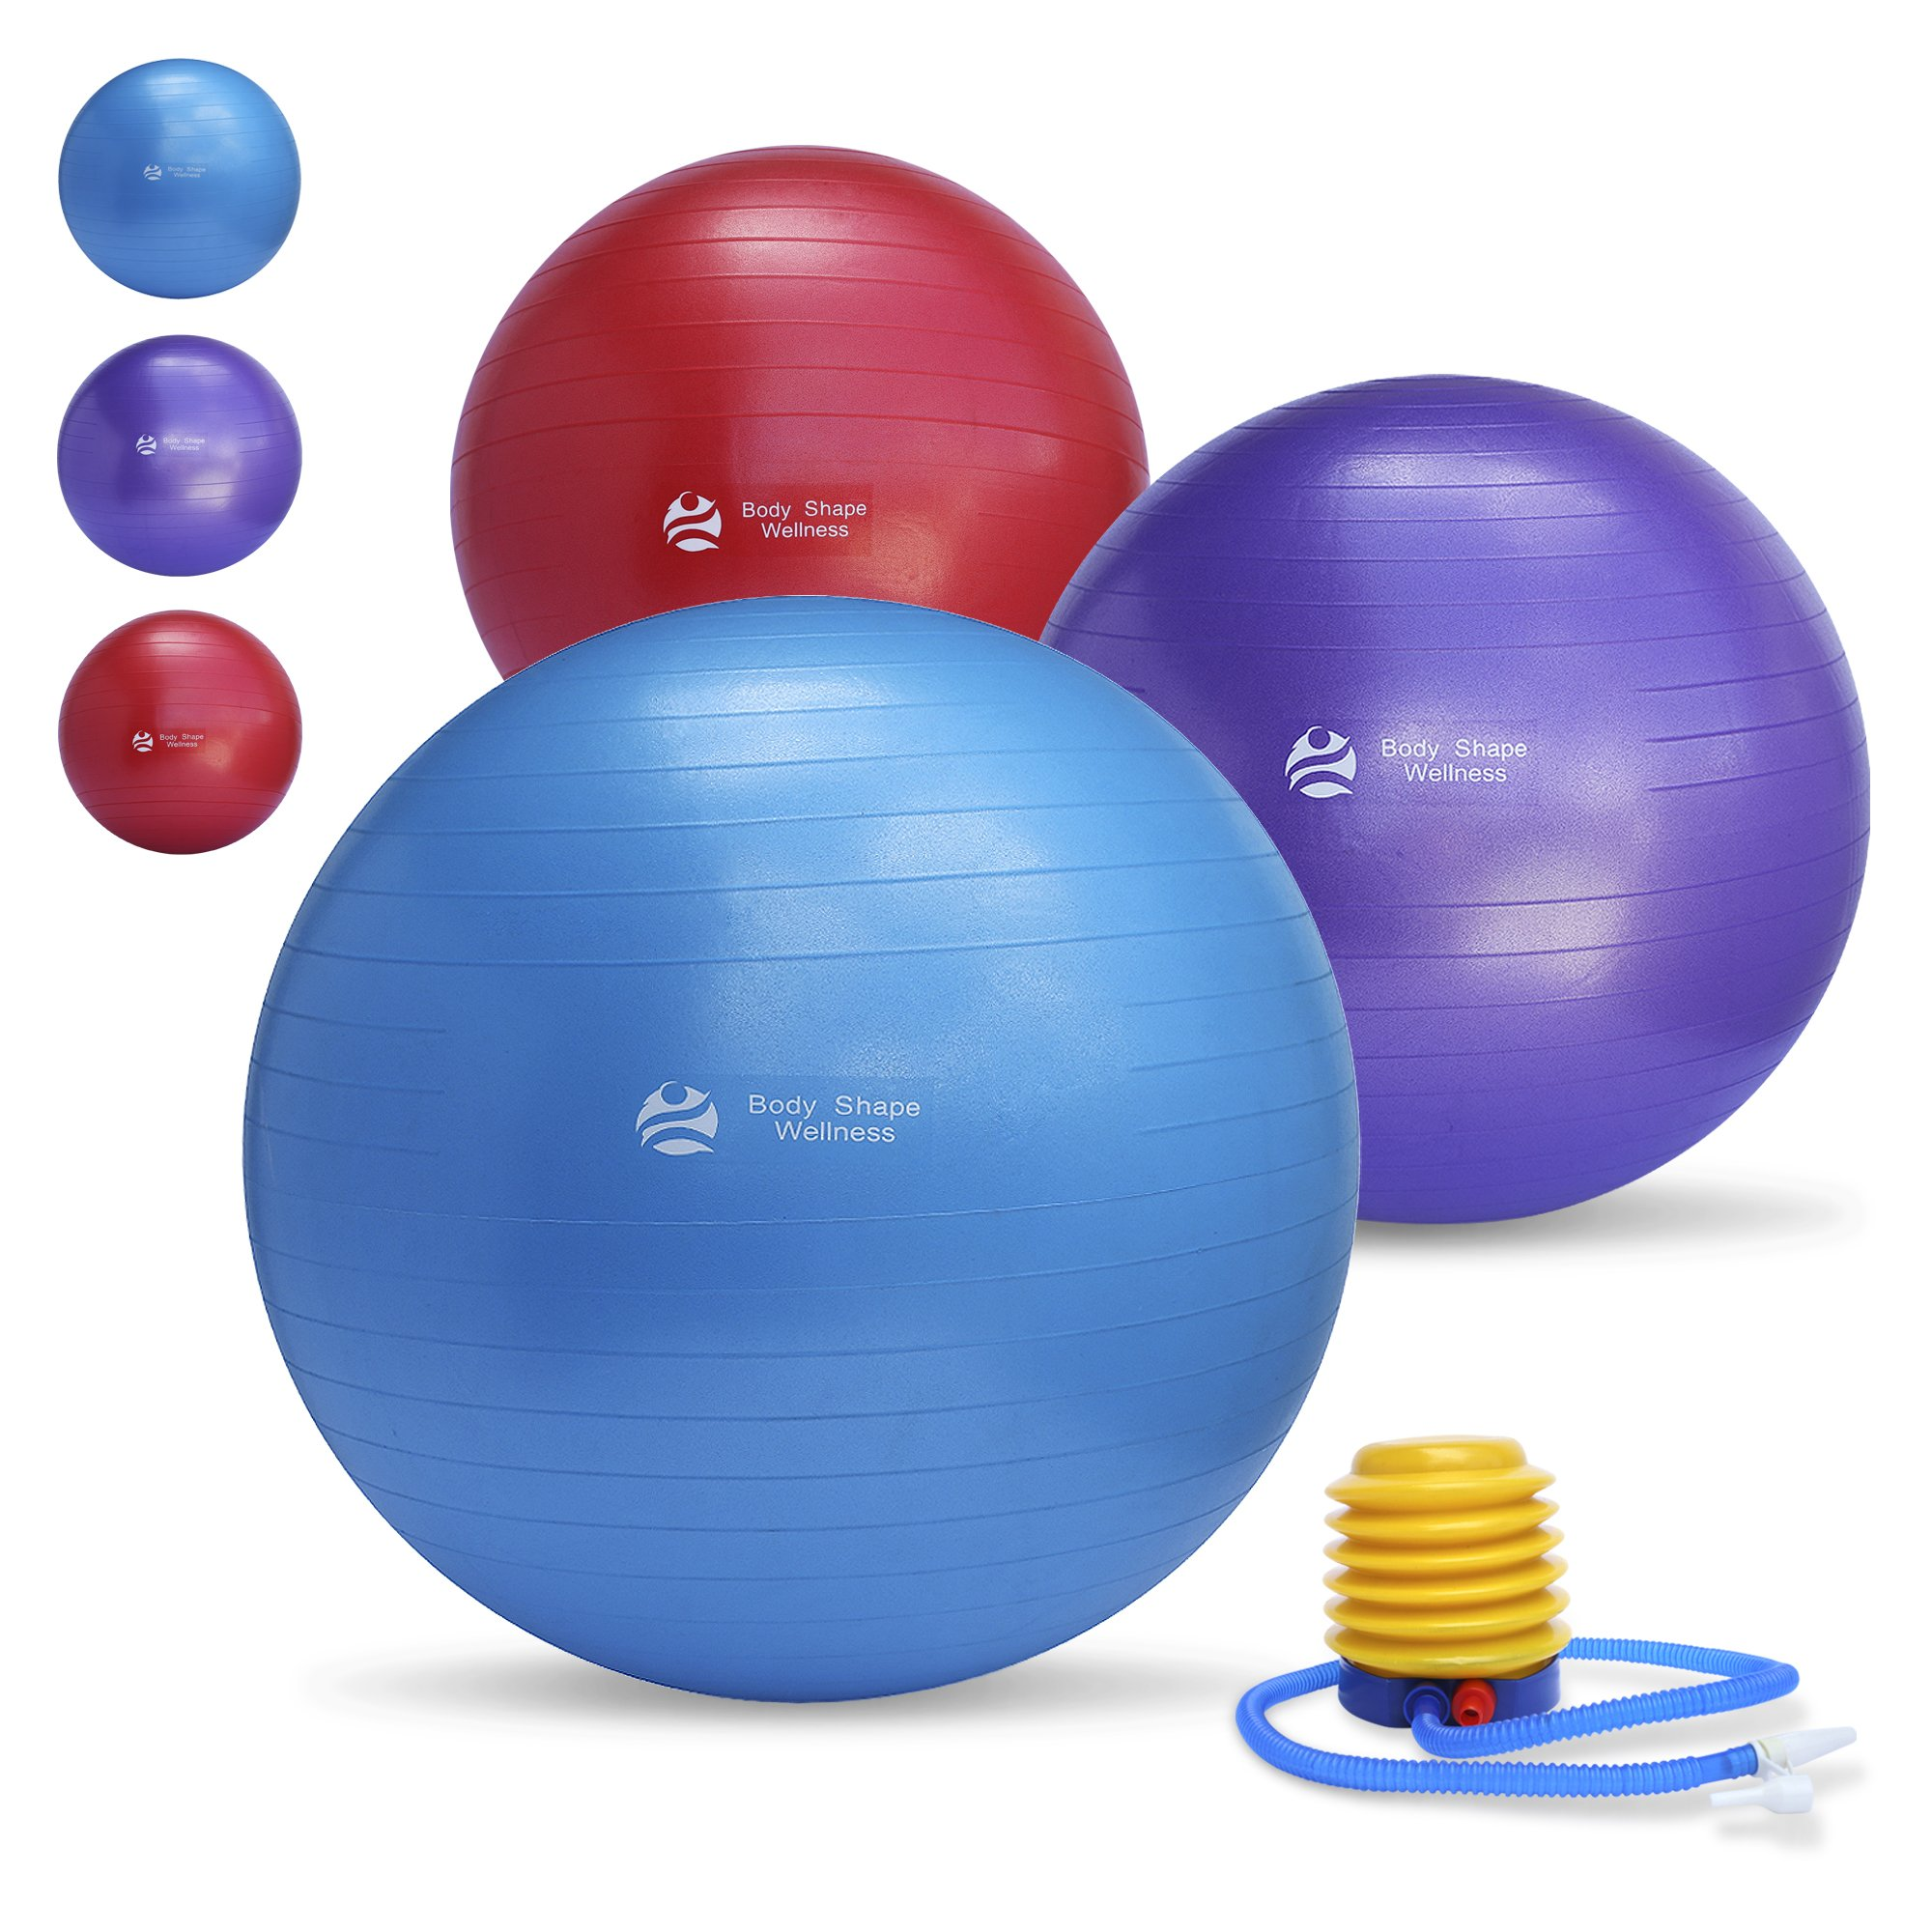 Body Shape Wellness Premium Exercise Gym Quality Ball with Pump-55cm/65cm/75cm well Tested up to 2000lbs Aniburts Stability Ball